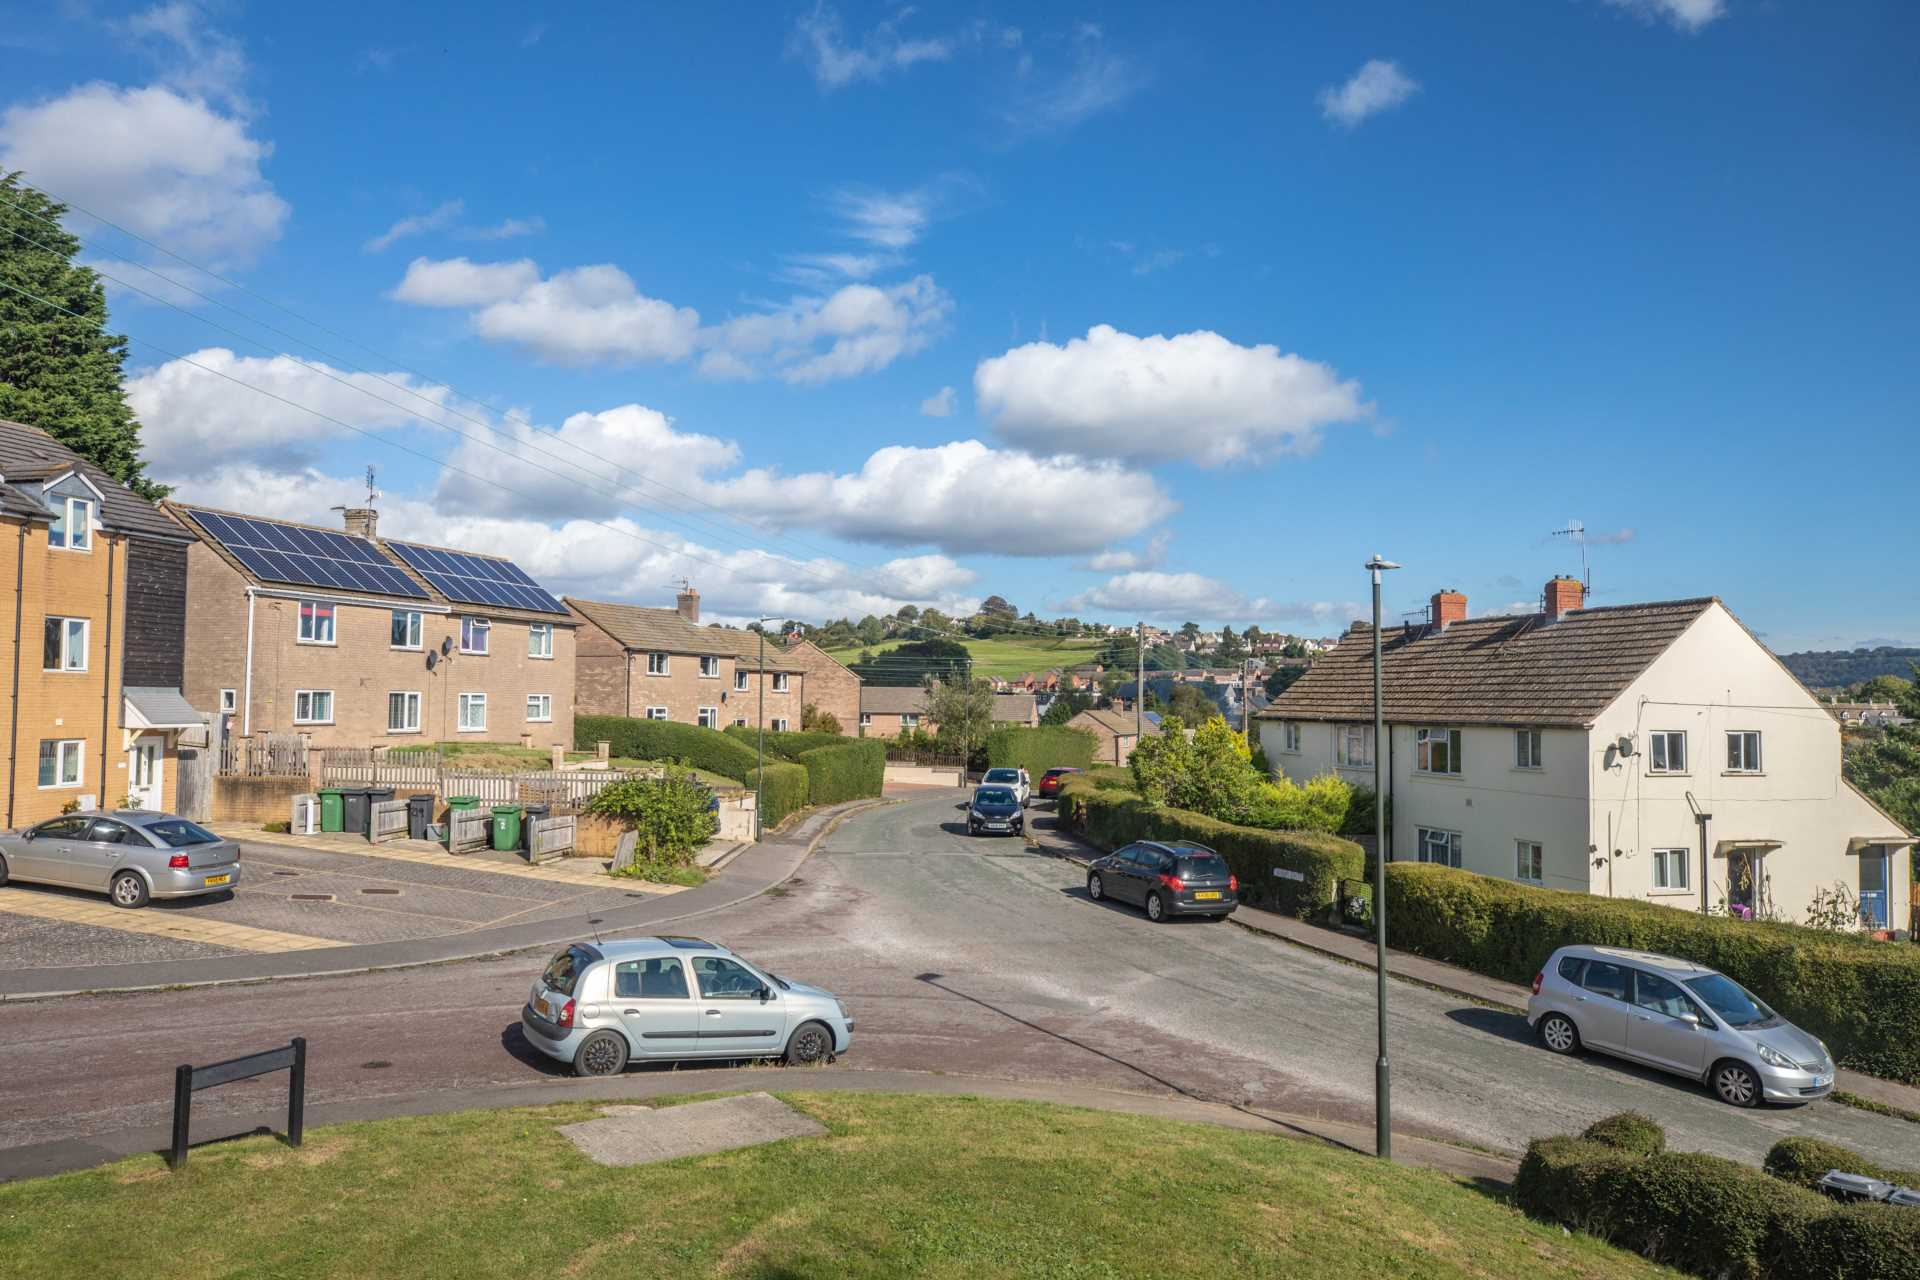 Princes Road, Cashes Green, Image 5